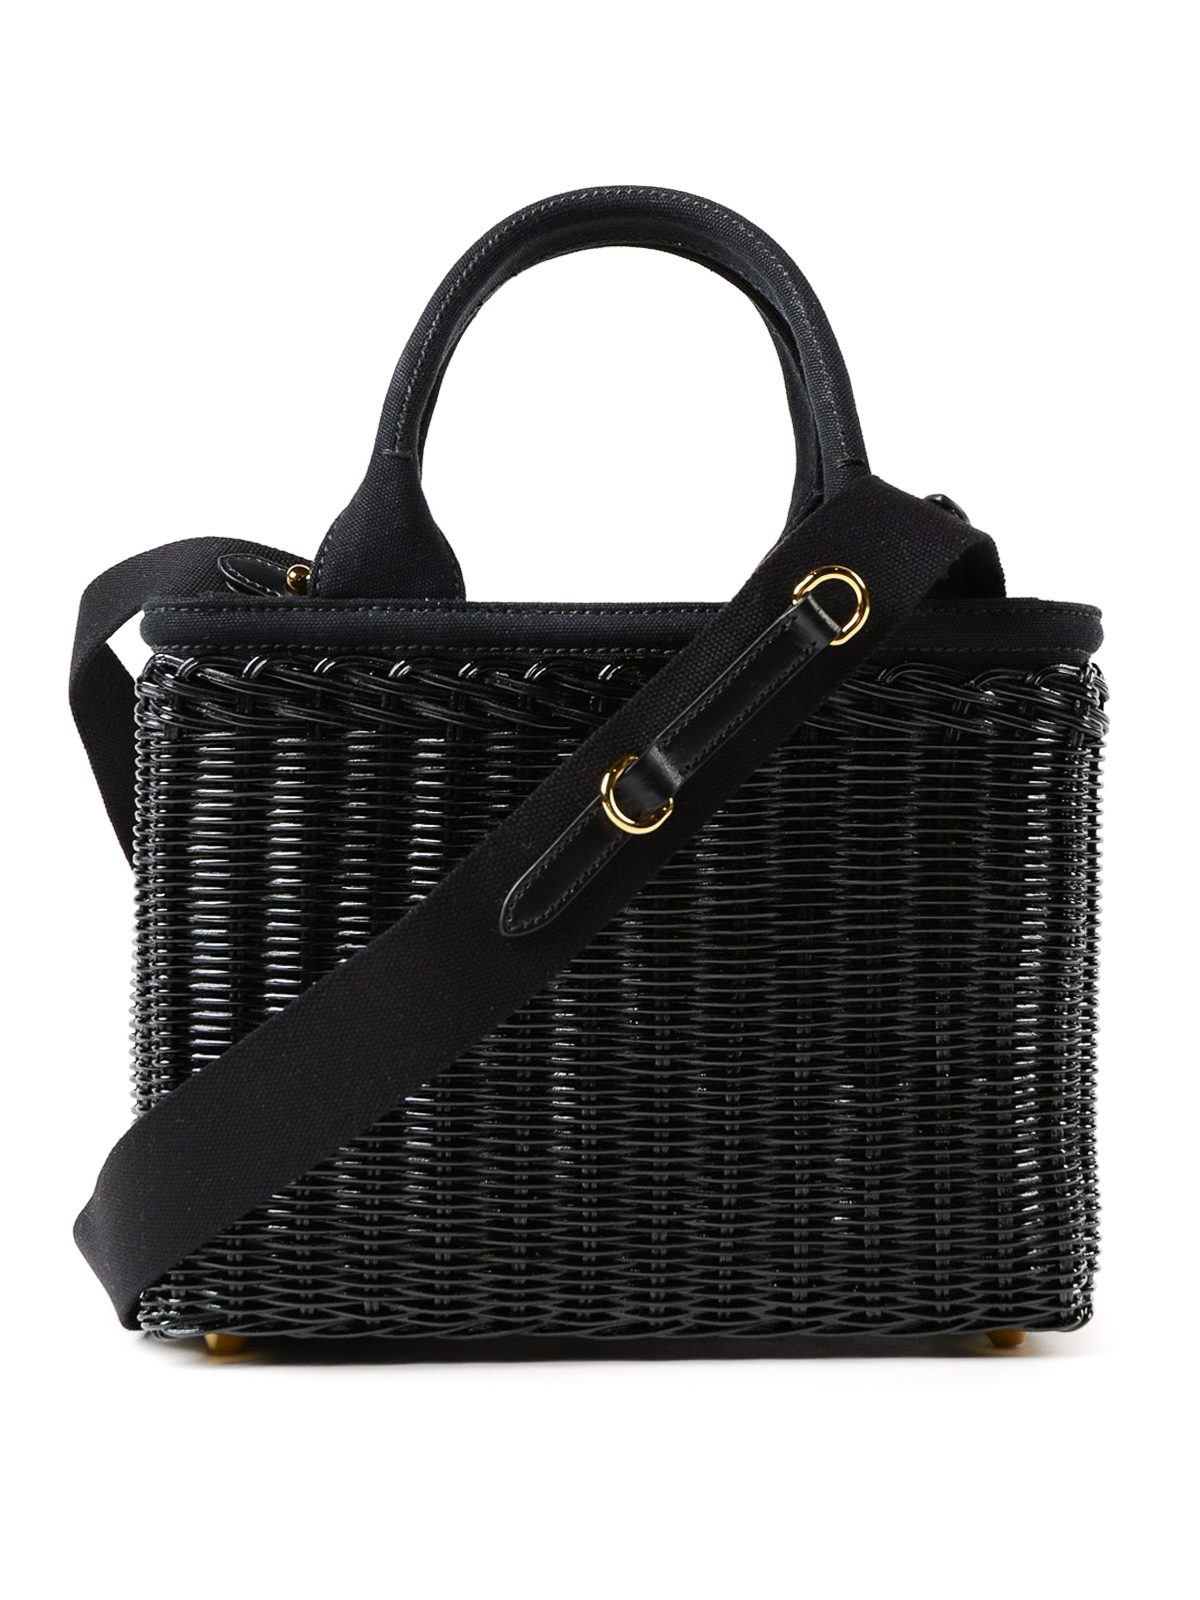 1f67a2cbd291 italy ikrix prada totes bags black wicker and hemp small tote c7816 e831c